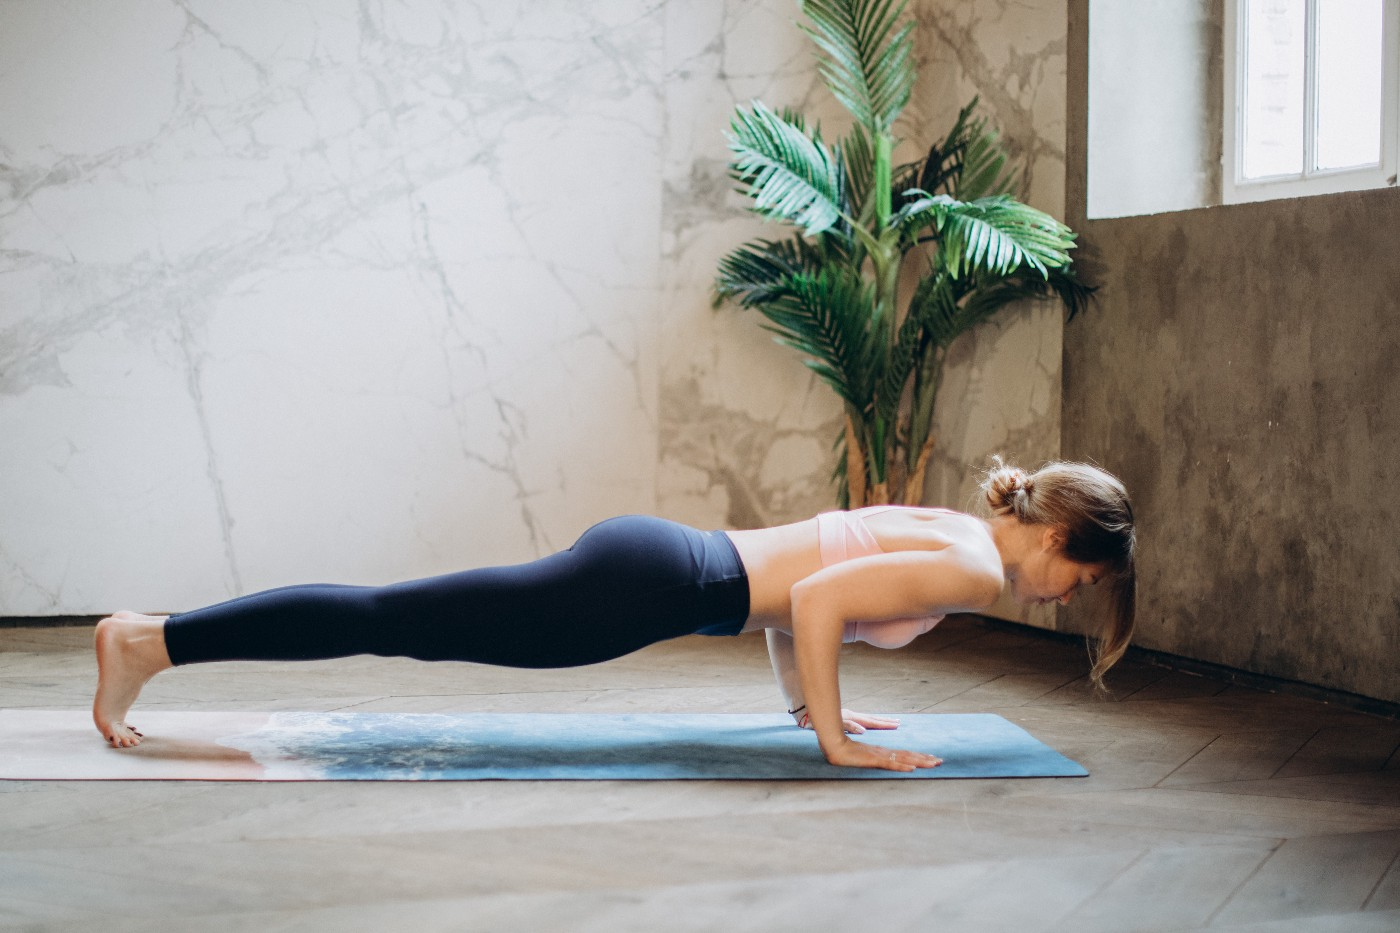 A woman doing a pushup on a yoga mat